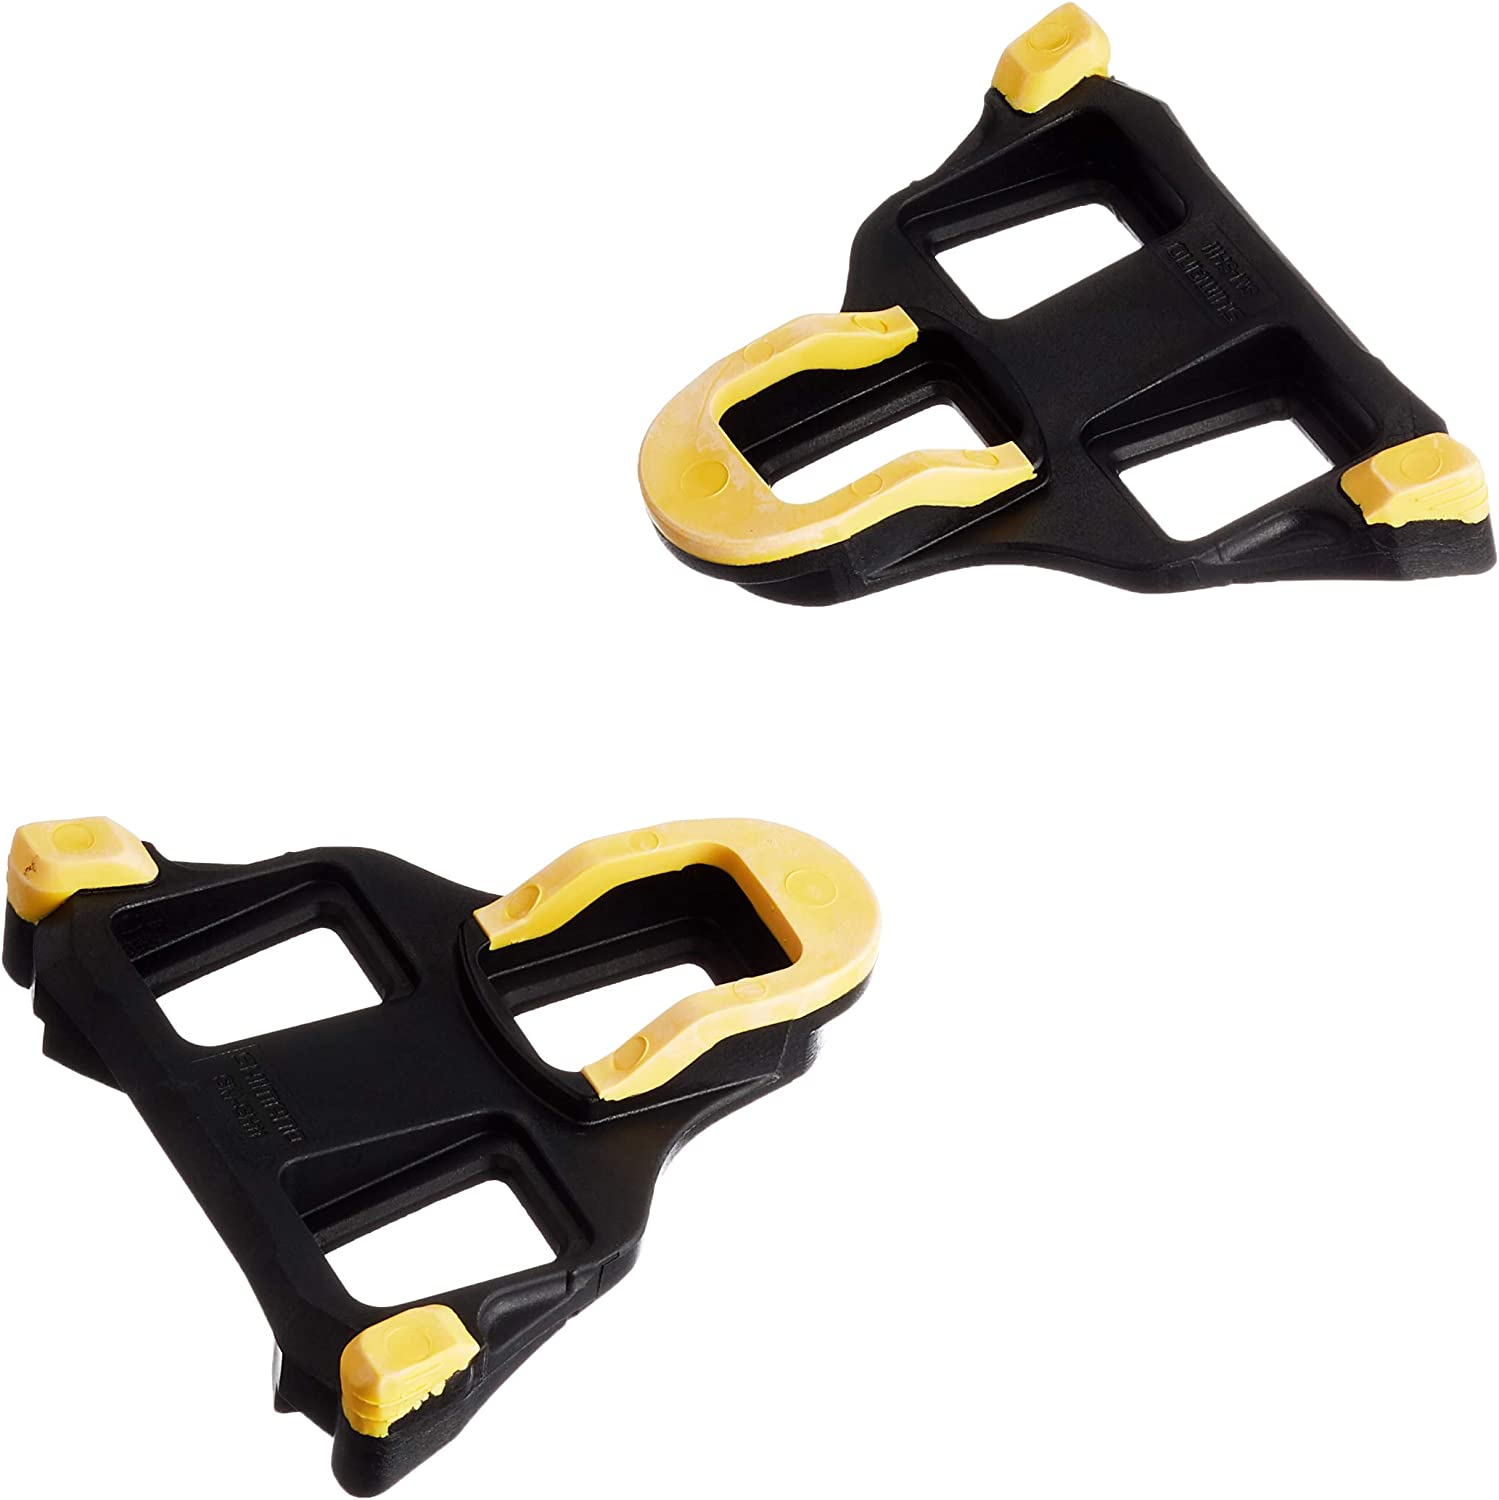 One Size Shimano PD-R7000 Carbon Pedals Black for sale online